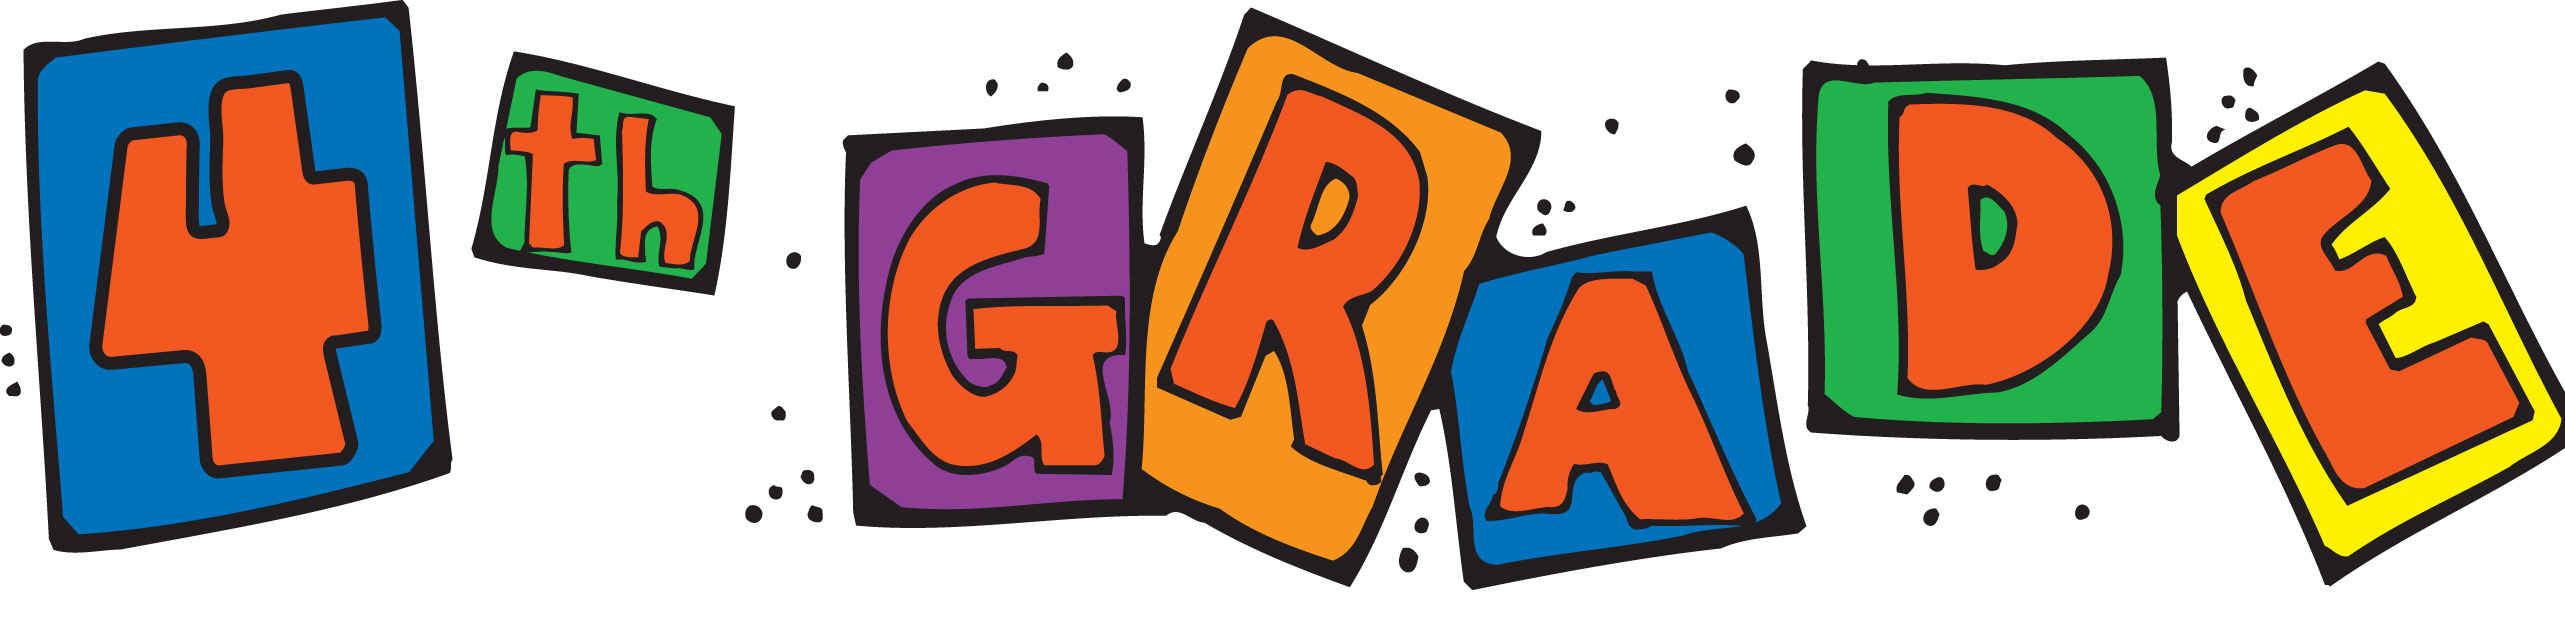 2565x628 Welcome To Fourth Grade Clip Art